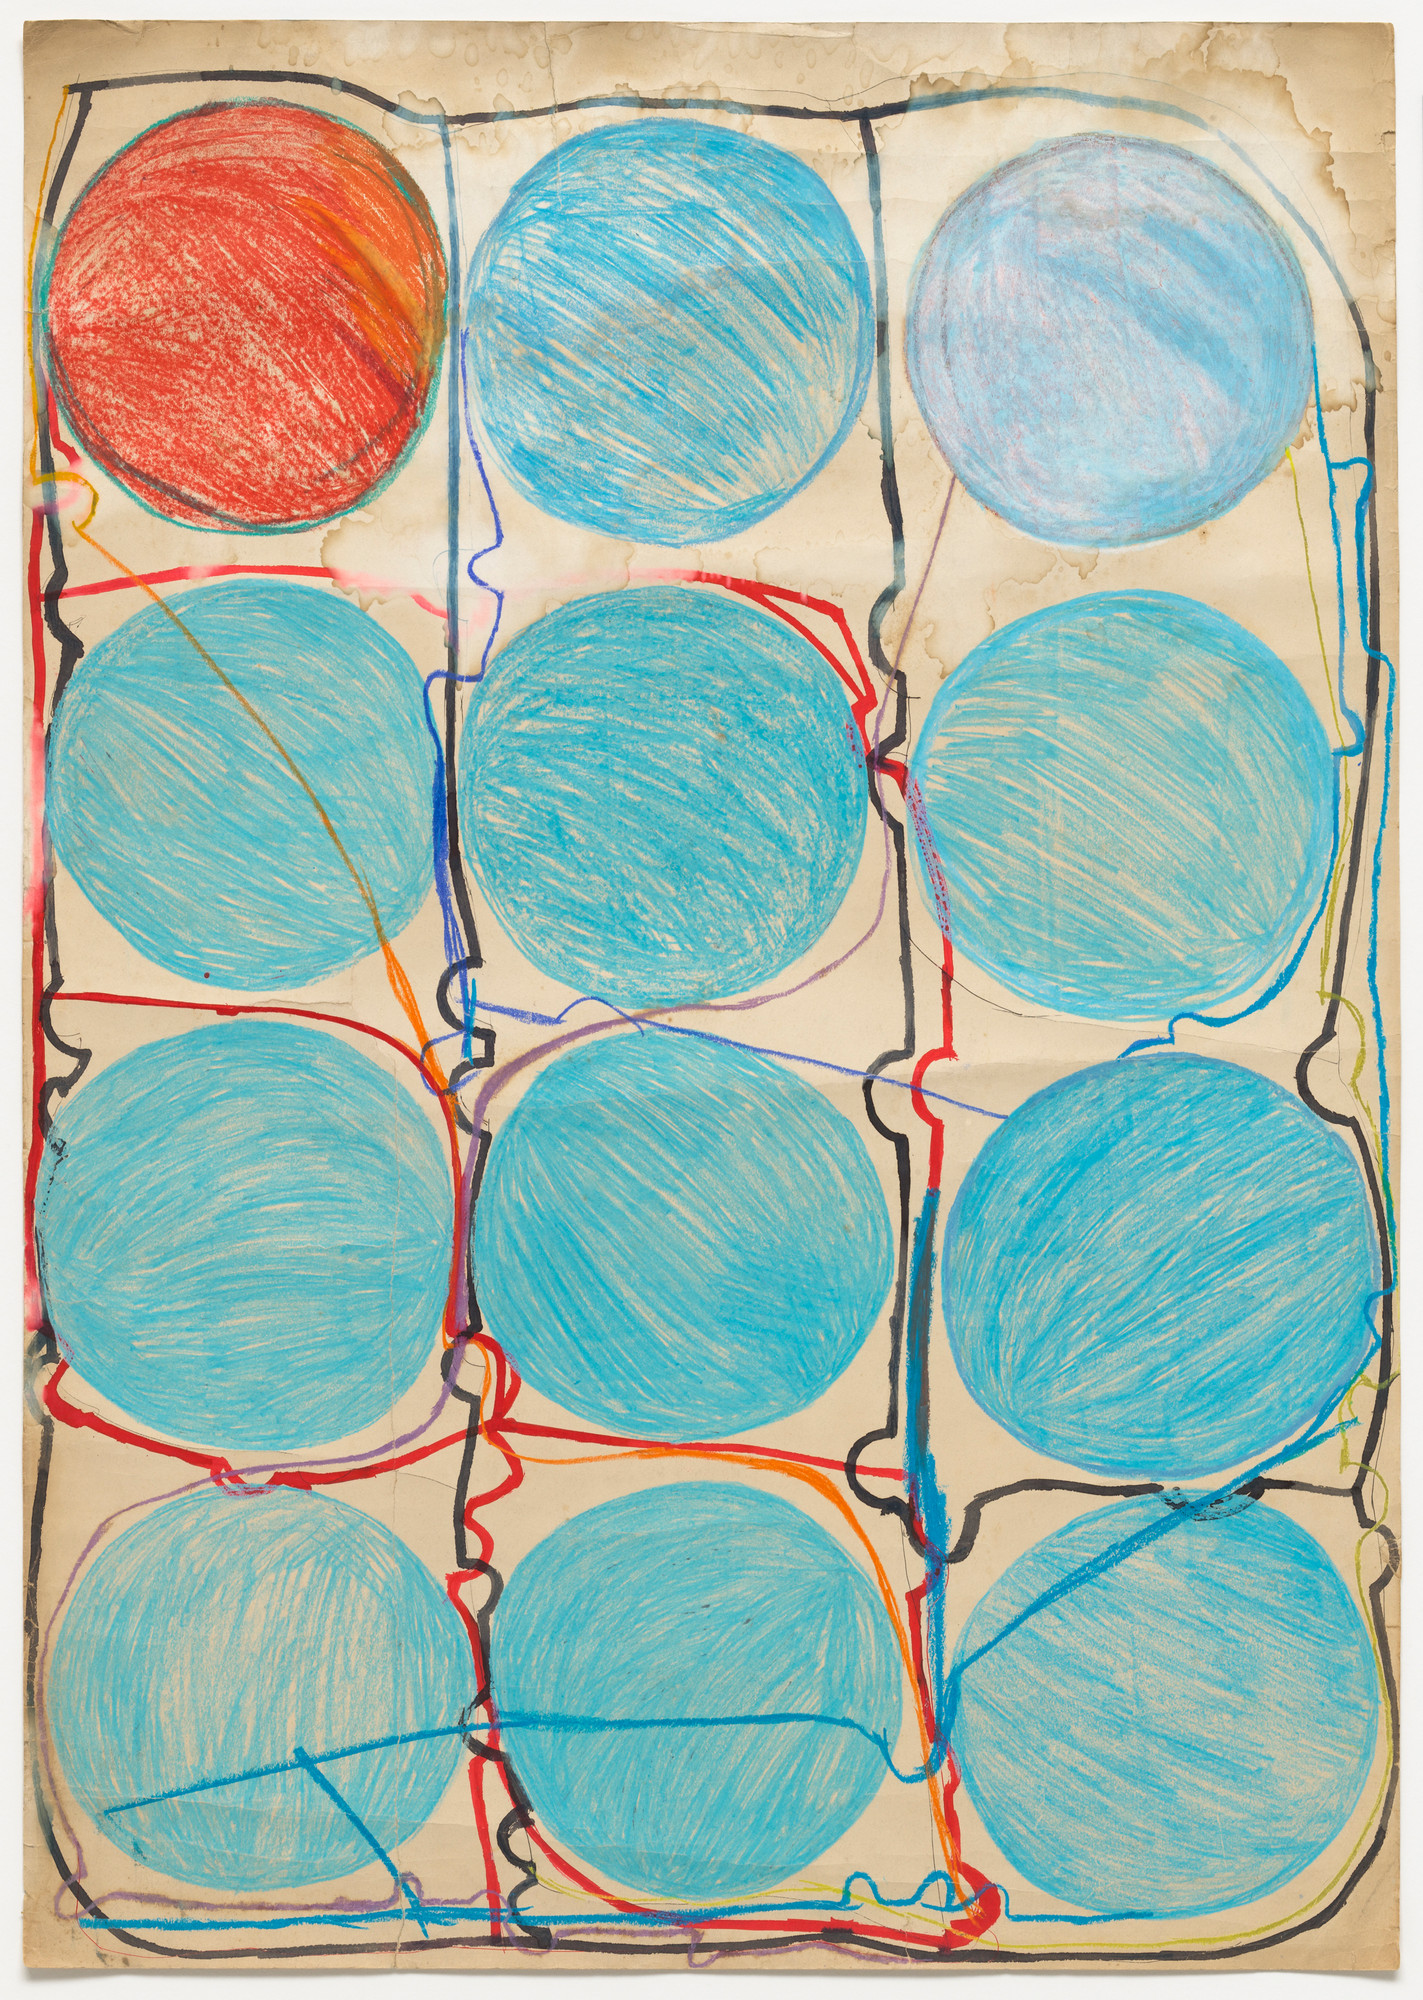 Atsuko Tanaka. Untitled. 1956. Watercolor and felt-tip pen on paper, 42 7⁄8 × 30 3/8″ (108.9 × 77.2 cm). The Museum of Modern Art, New York. Purchased with funds provided by the Edward John Noble Foundation, Frances Keech Fund, and Committee on Drawings Funds. © 2010 Ryoji Ito